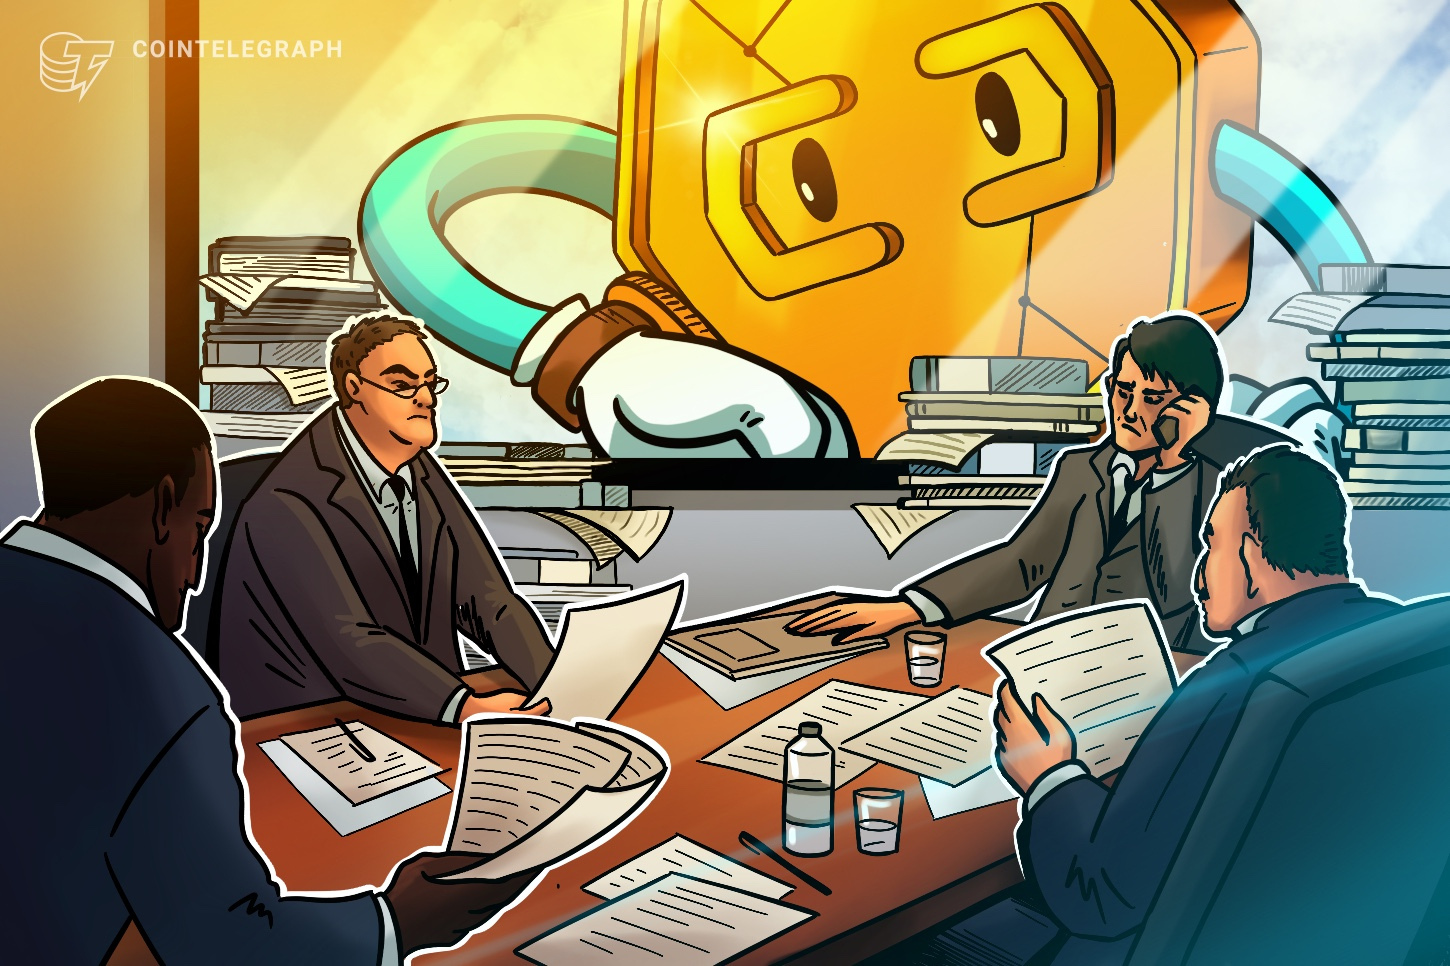 Executives at JPMorgan Chase weigh in on stablecoin regulation and crypto competition